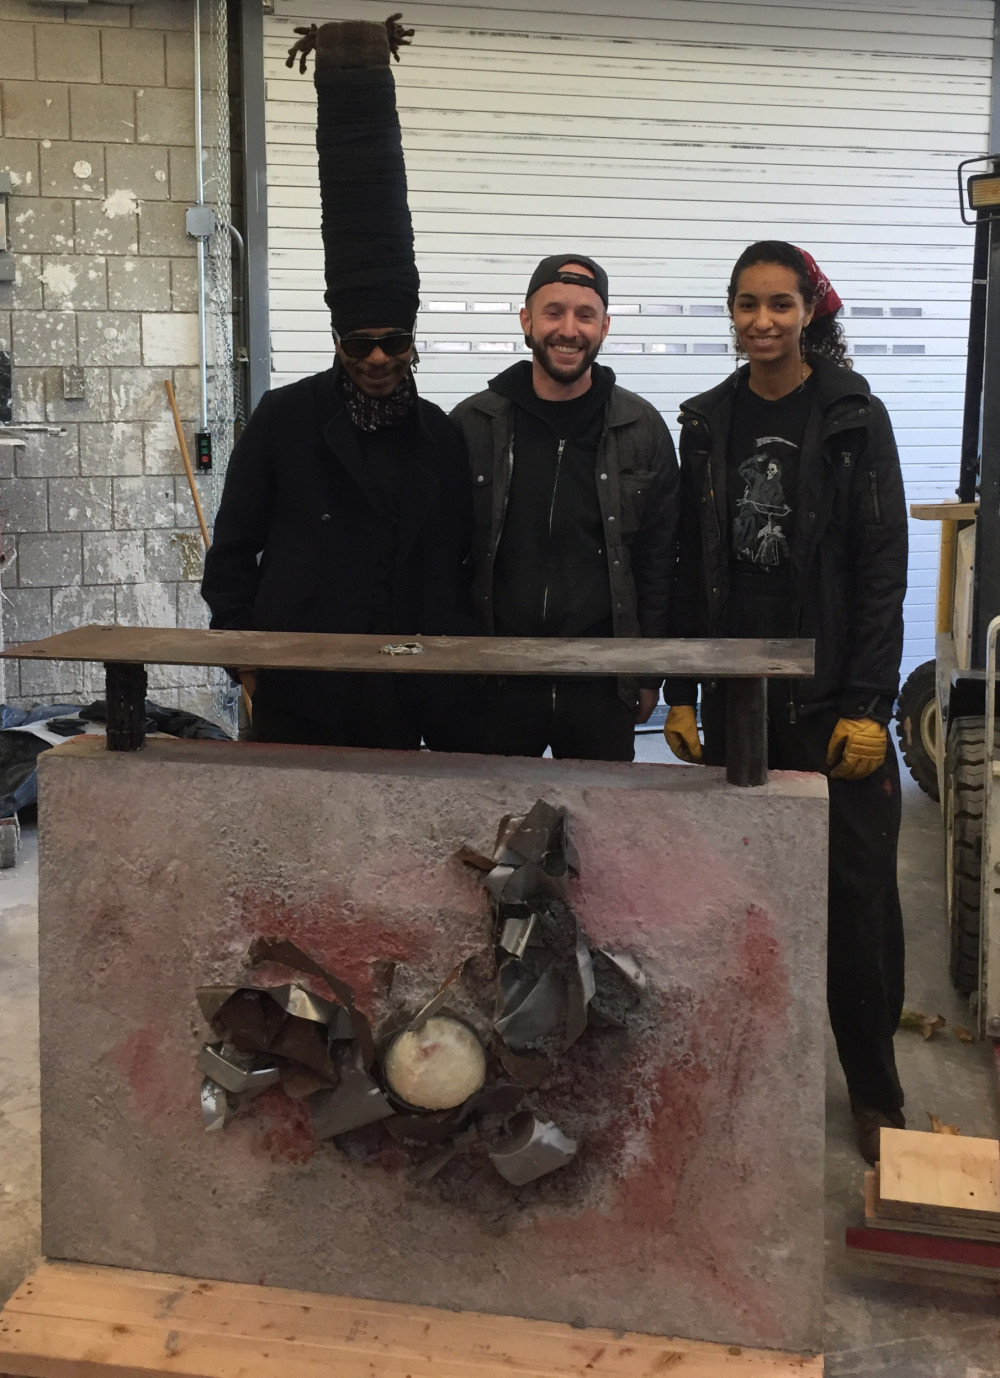 From Left to right: Engels the Artist; 3-D Media Instructor Felix Matta-Fletcher; and student Gabriella Rosen pose with the final work of art.